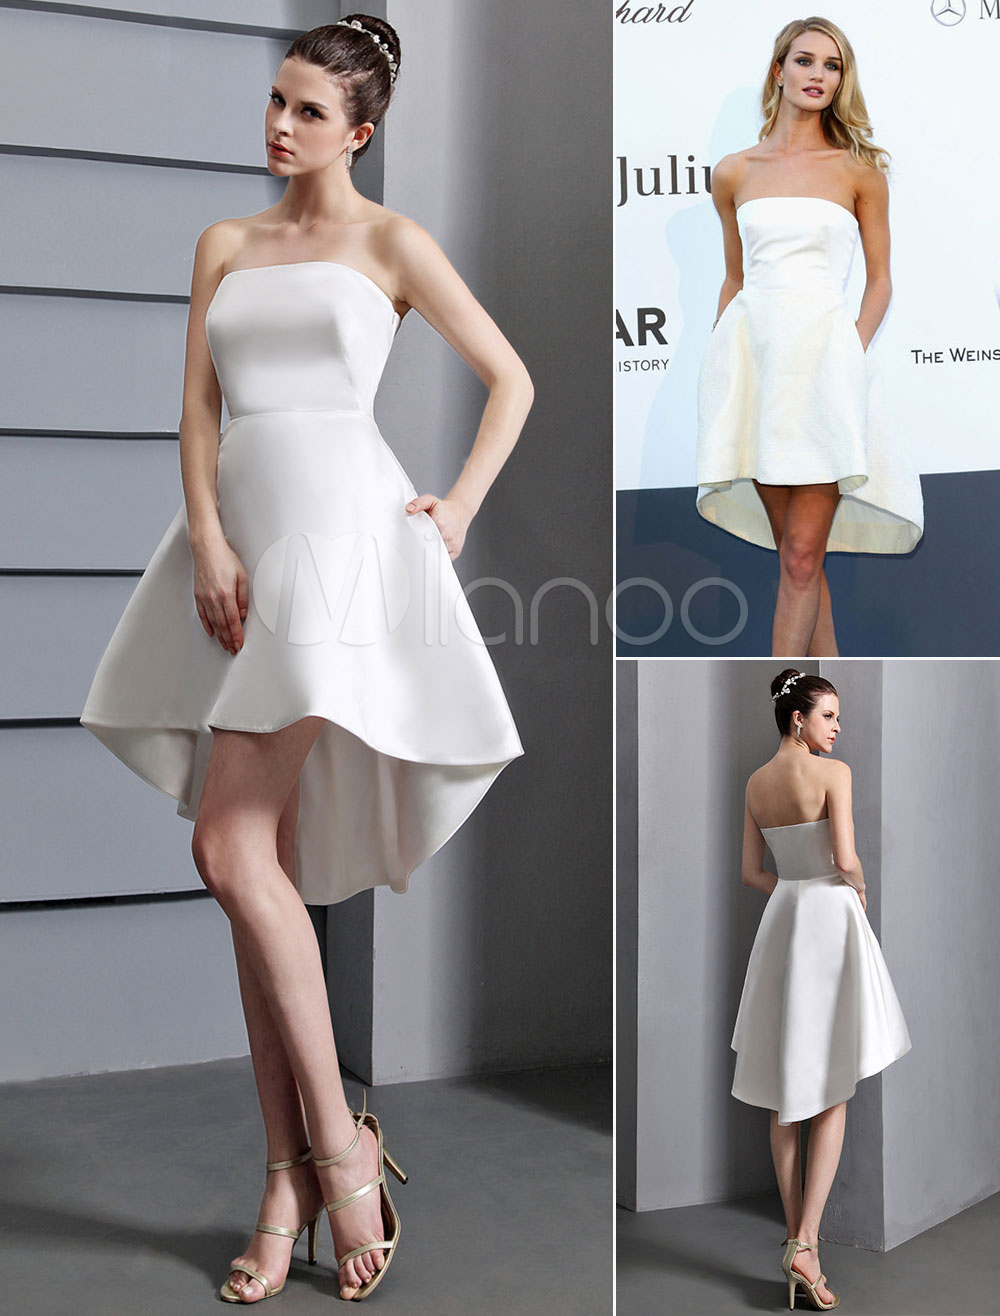 White Prom Dresses 2018 Short Ivory Strapless Backless Cocktail Dress High Low Satin Party Dress